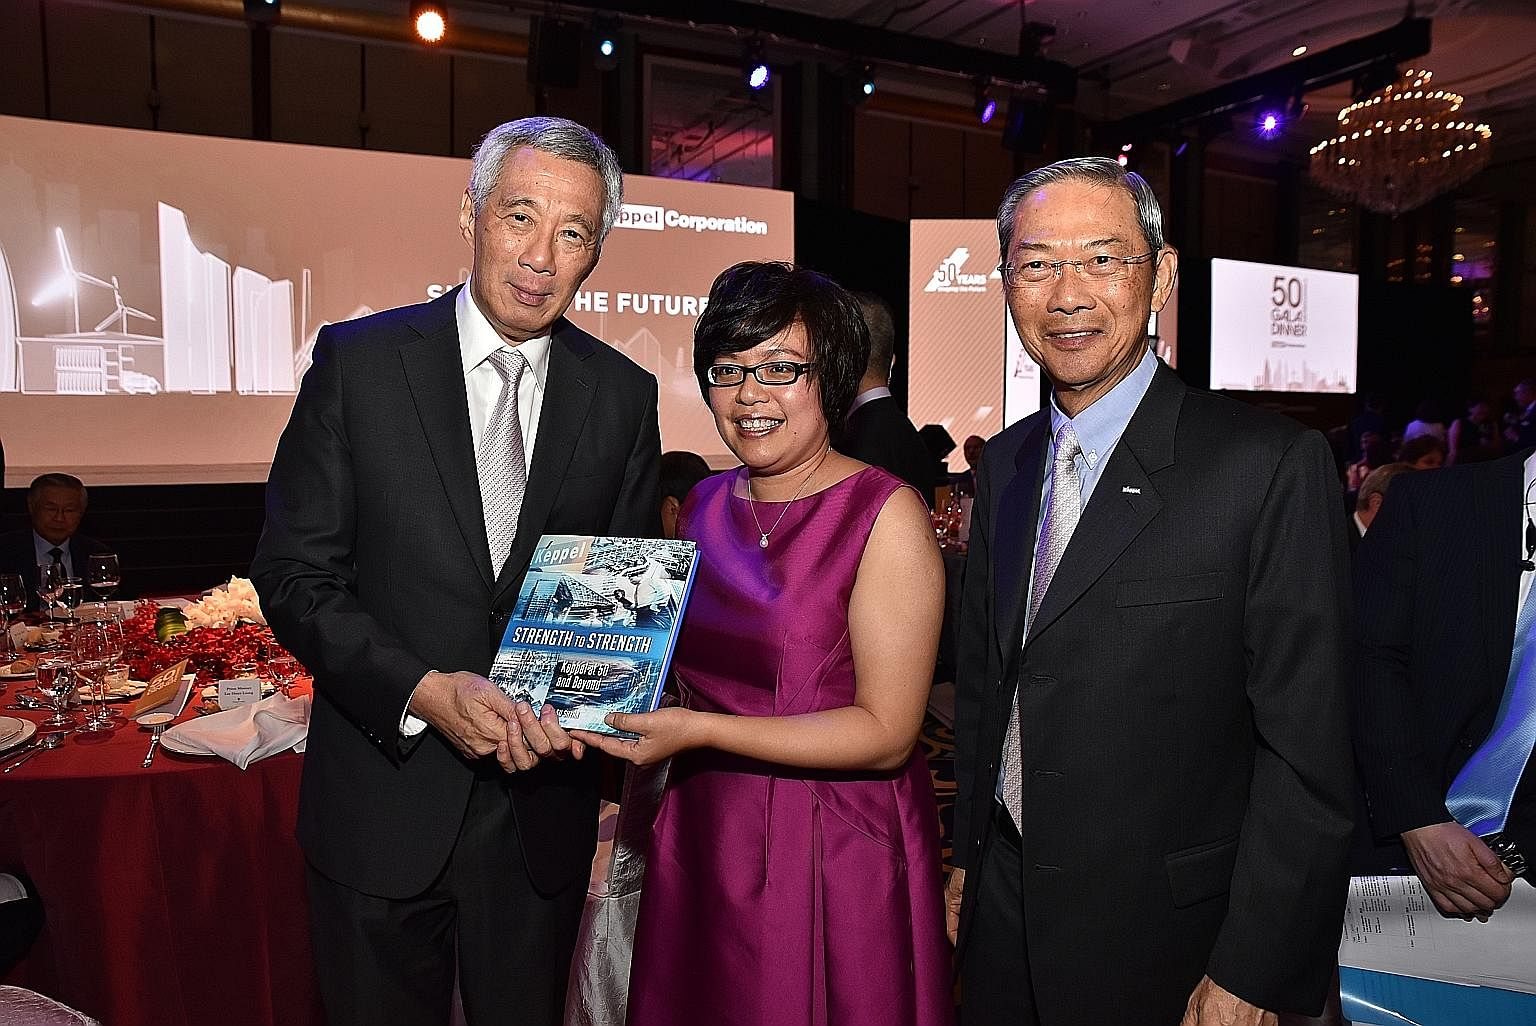 ST business editor Lee Su Shyan, who wrote a book charting Keppel's growth, with PM Lee and Keppel chairman Dr Lee.